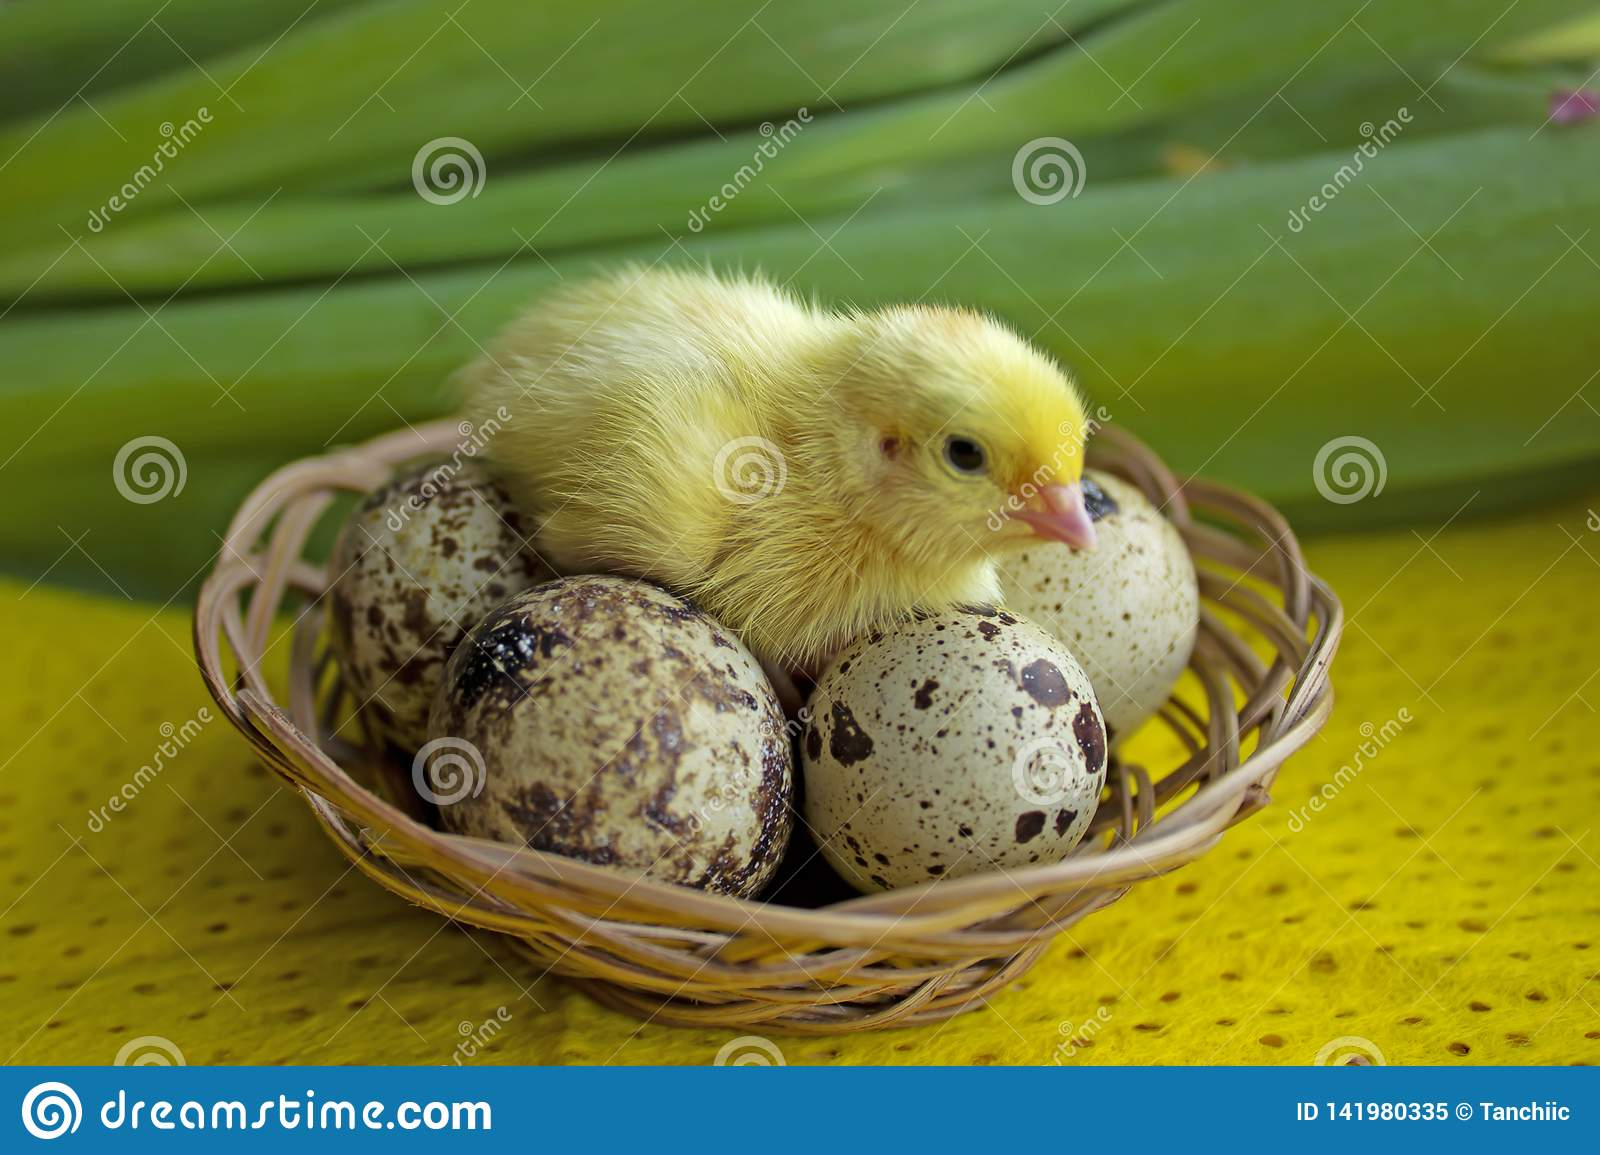 Baby quail sitting on eggs in a basket. Easter. The concept of the birth of a new life